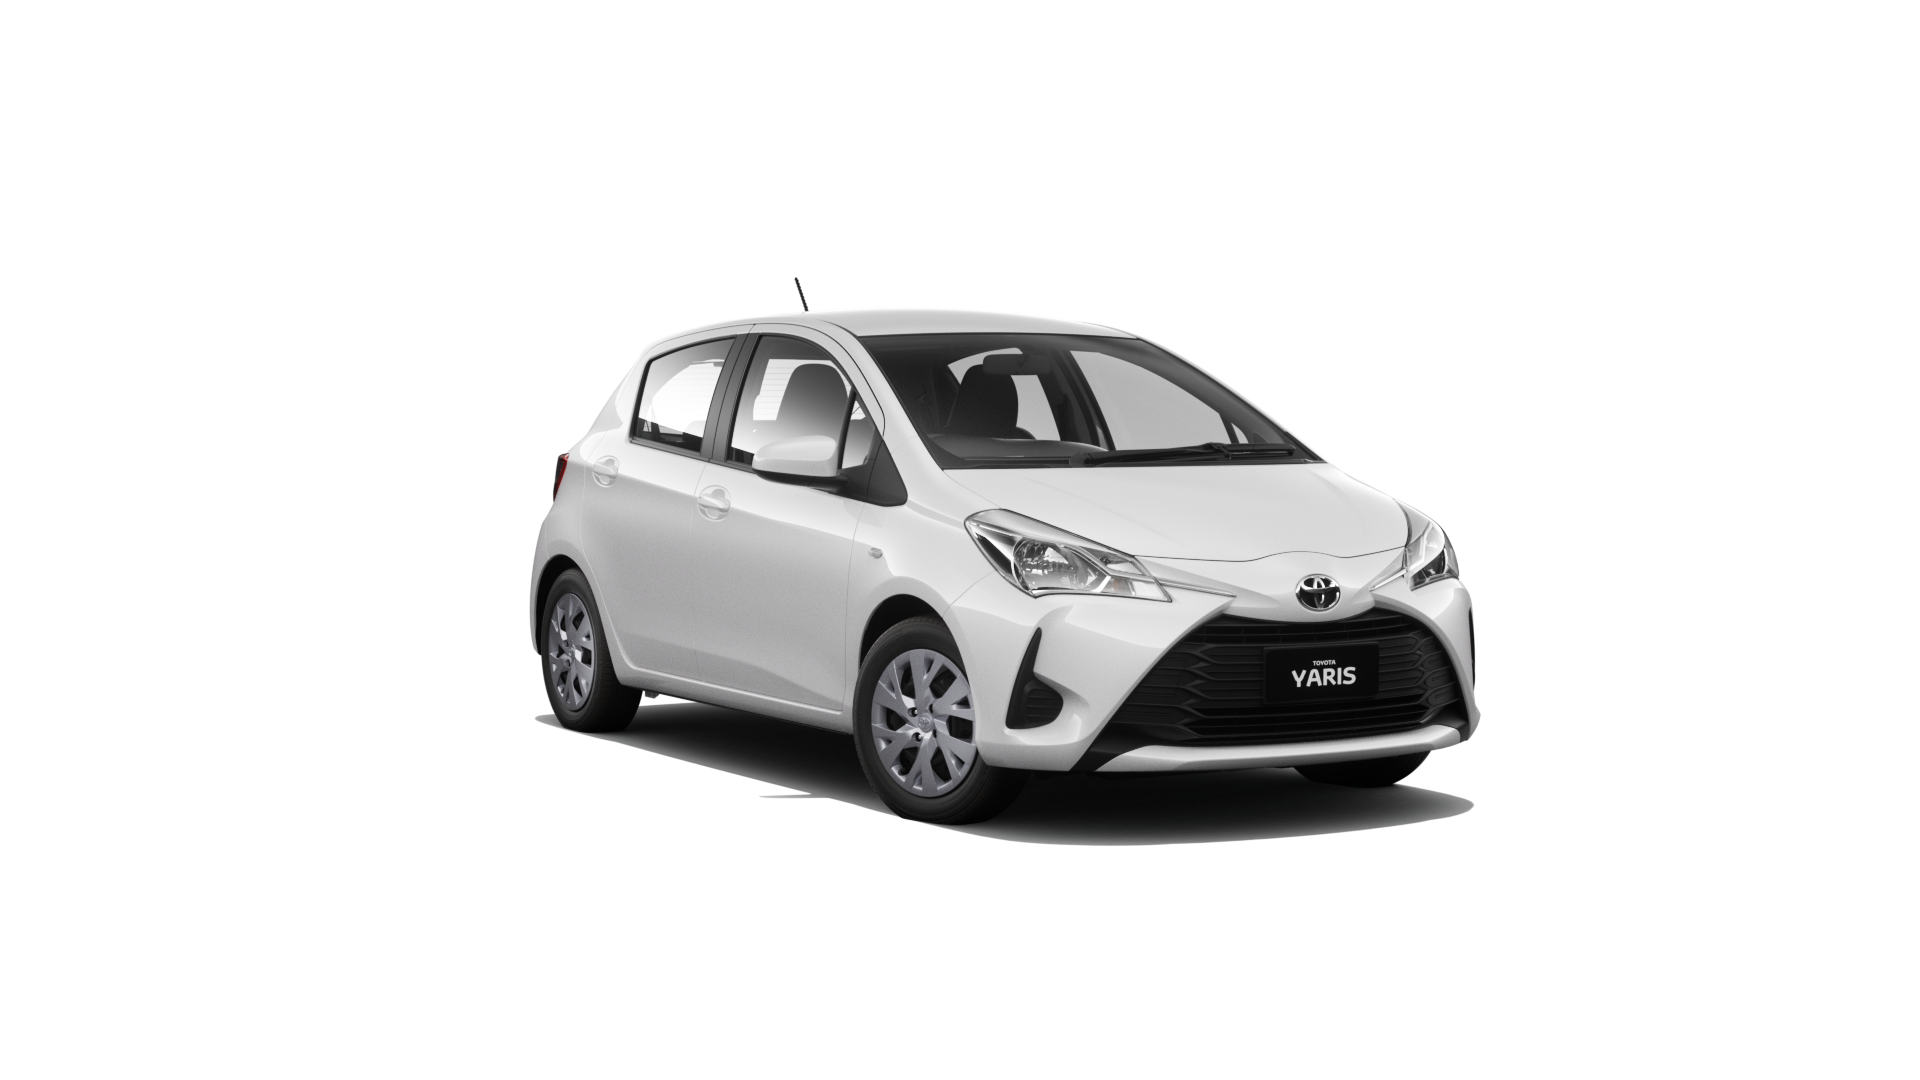 2017-01_yaris_fwd_5dr-hb_pet_ascent_a0_040_glacierwhite_e360_v01_003